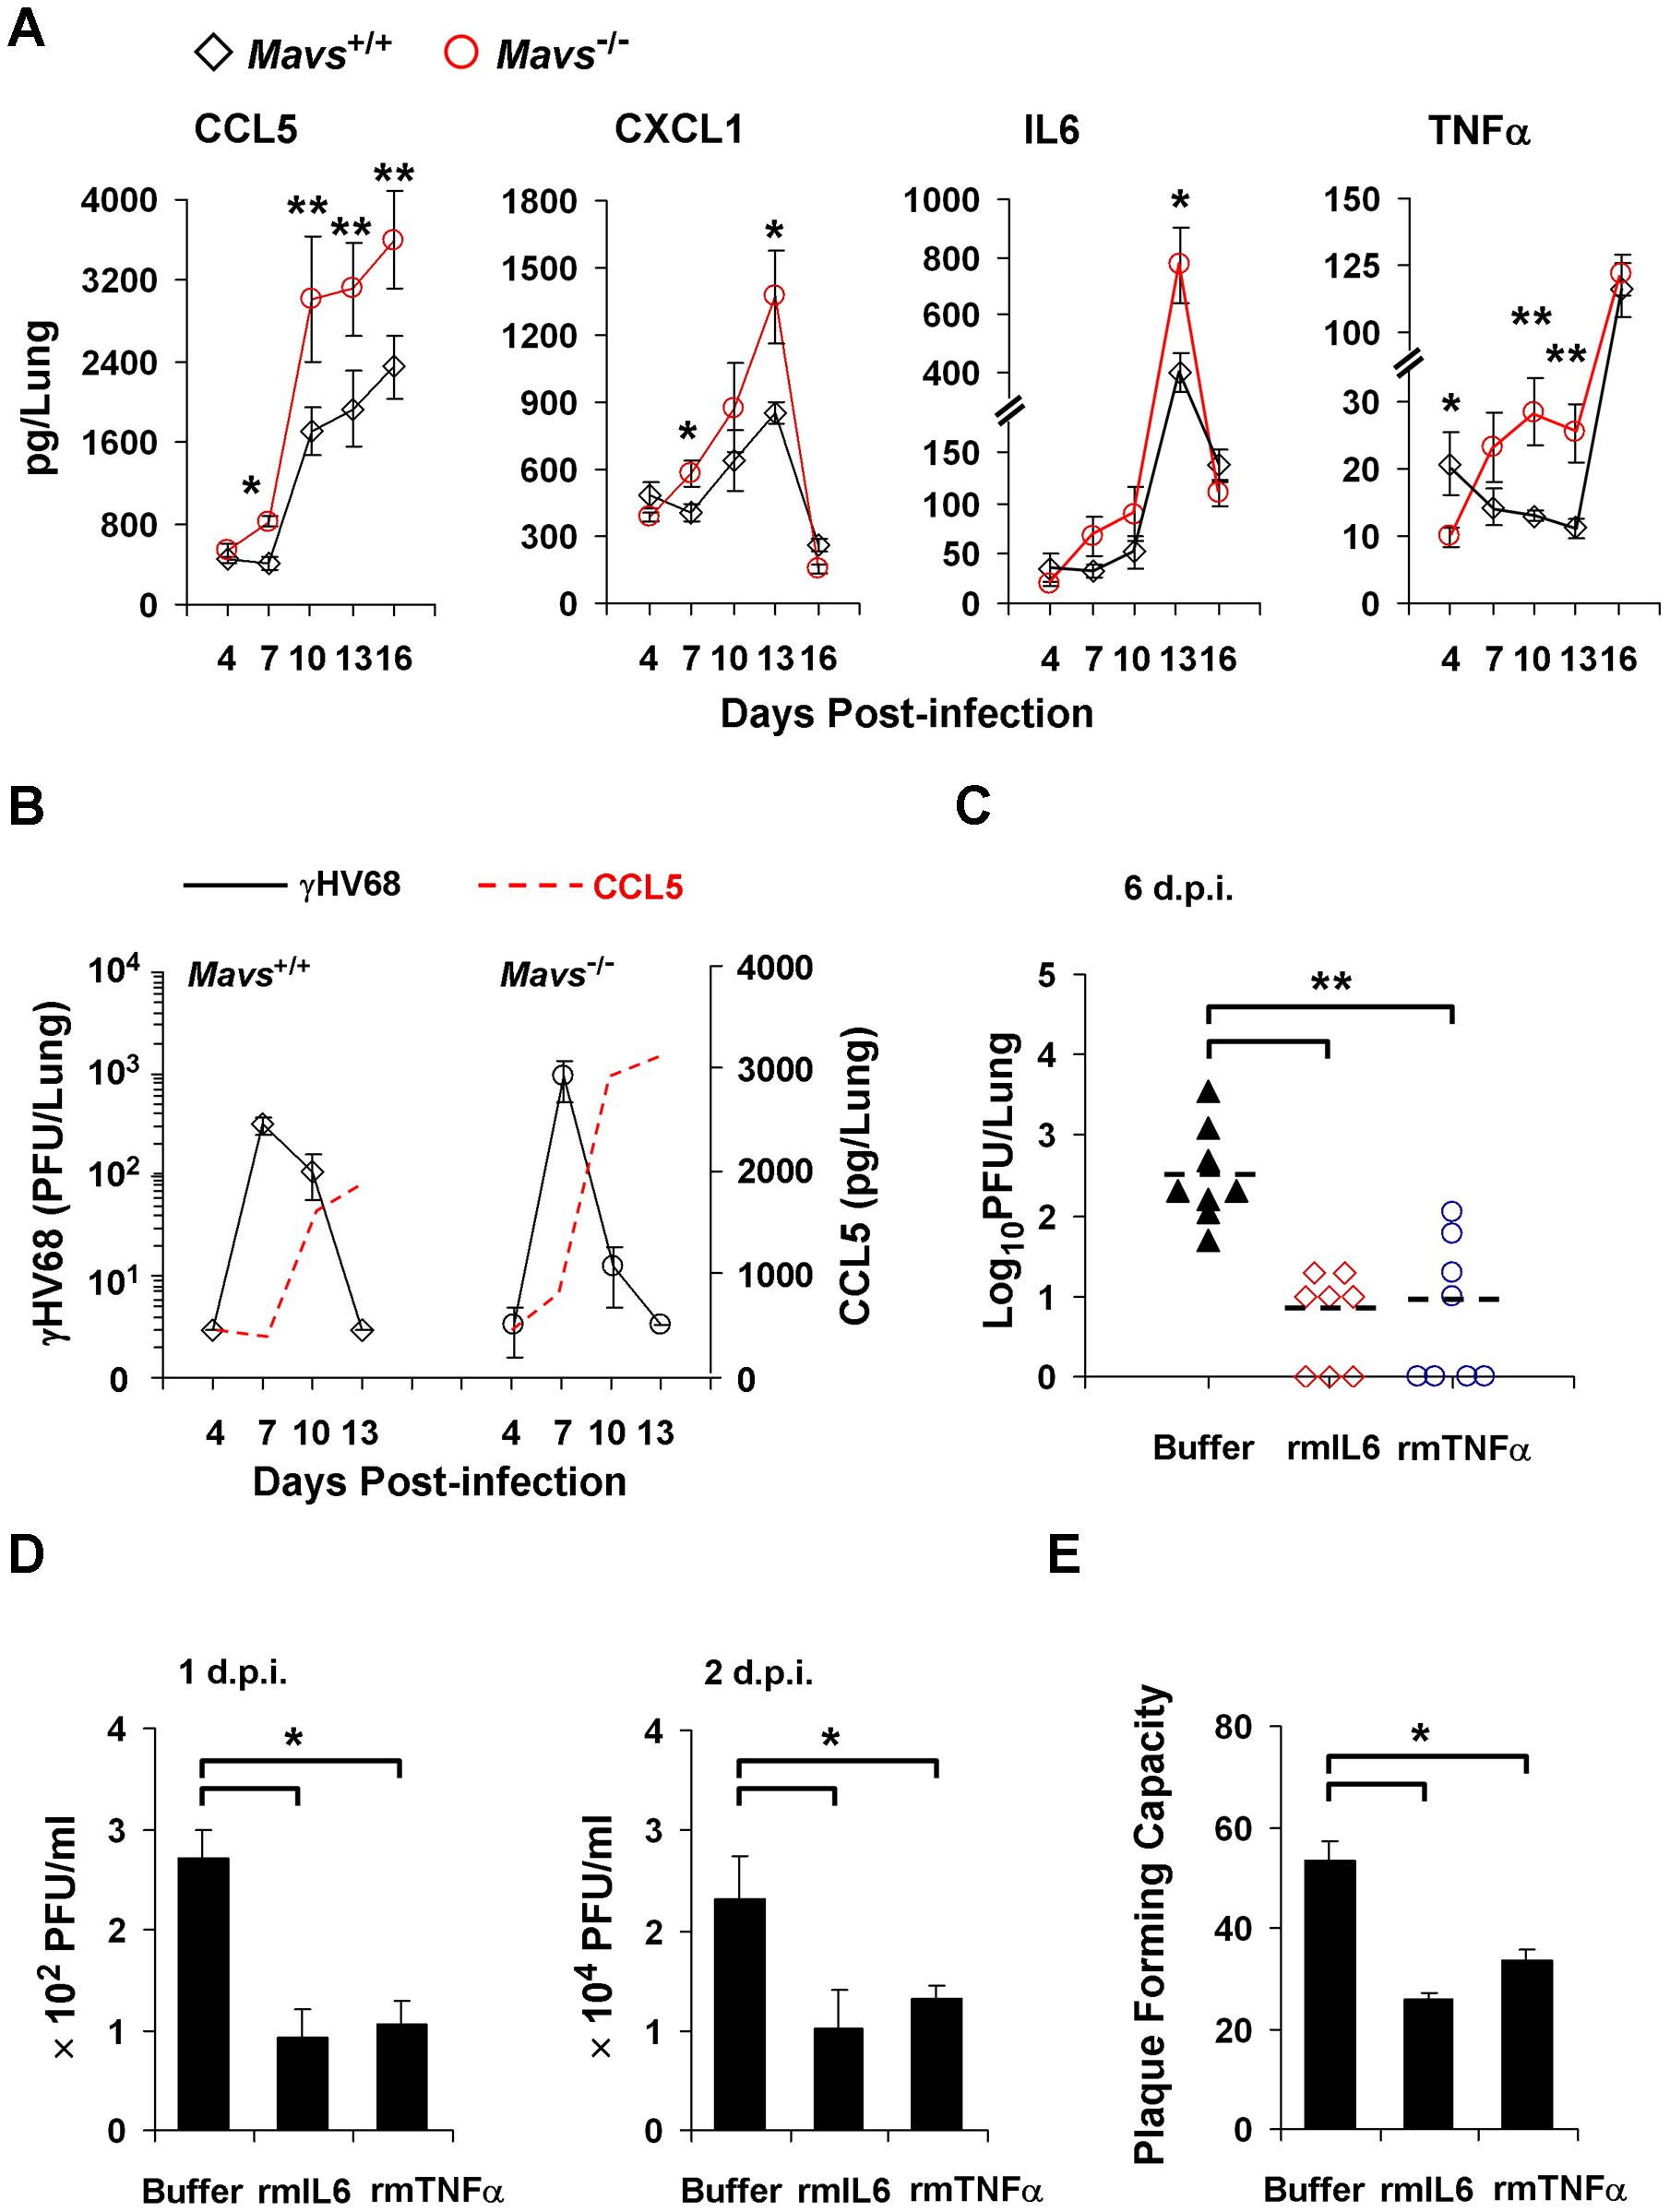 MAVS deficiency increases inflammatory cytokines in the lung of γHV68-infected mice.